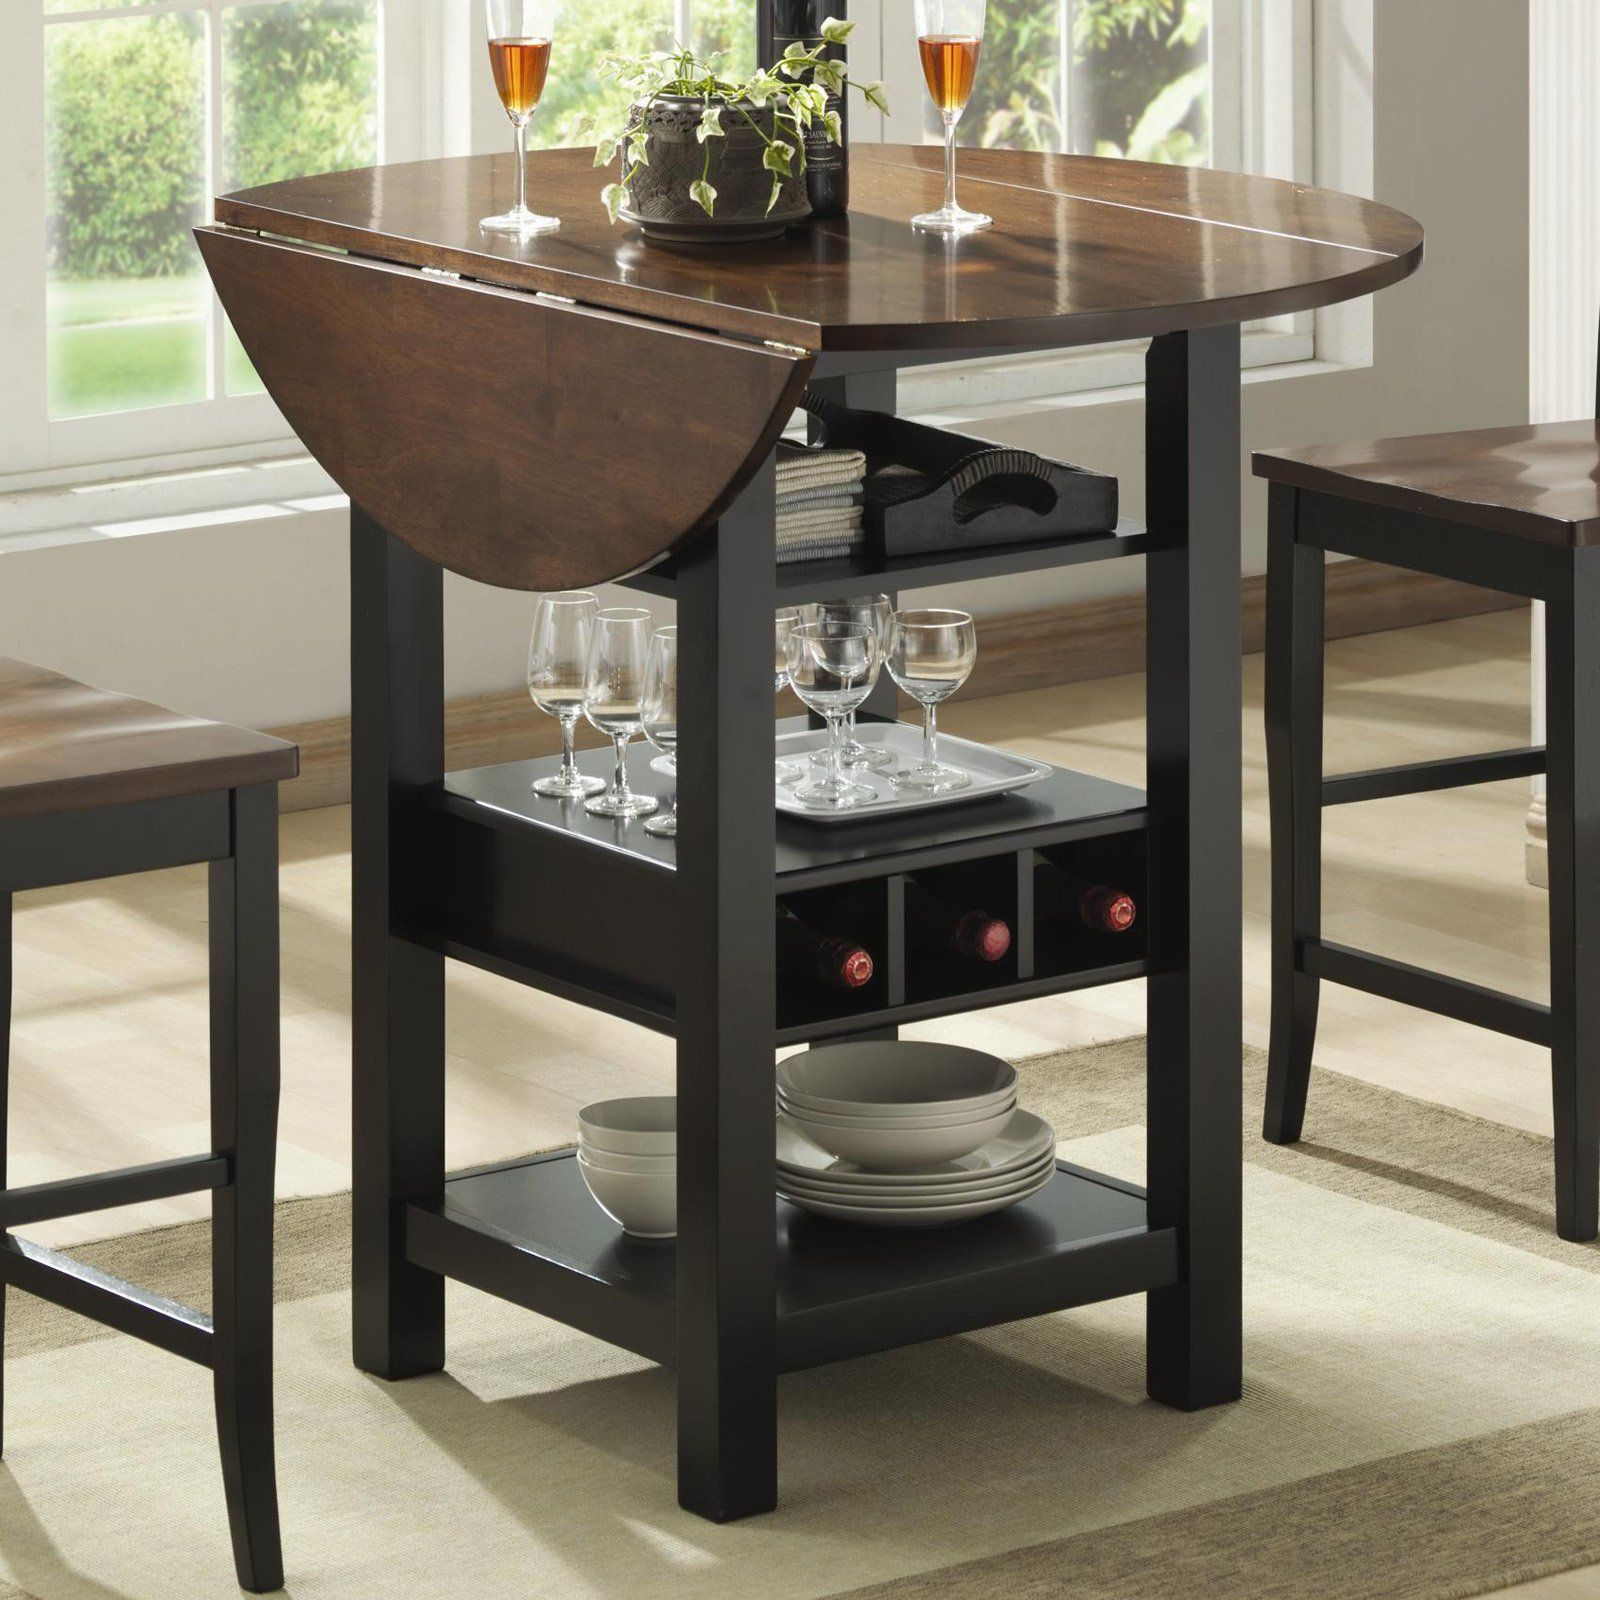 Best Tall Round Kitchen Table Dining Table With Storage Pub Table And Chairs Wine Rack Pub Table